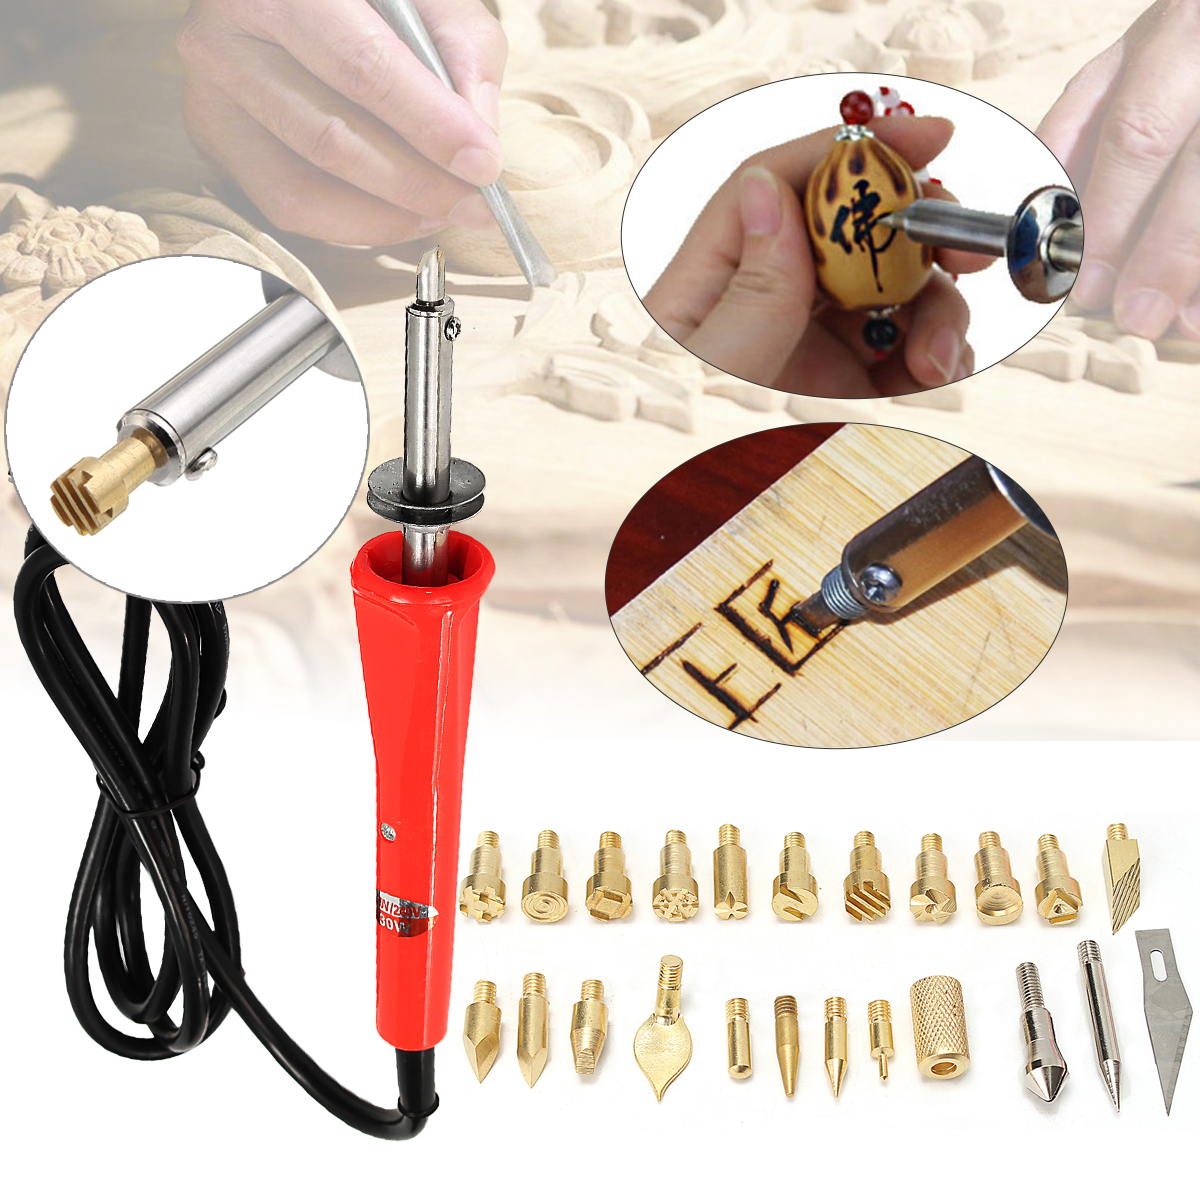 25 PCS 30W 220V/240V Wood Burning Iron Pen Set Kit Tips Soldering Gun Weldering Tools Pyrography Leather Crafts with Metal Stand for Variously Repaired Usage